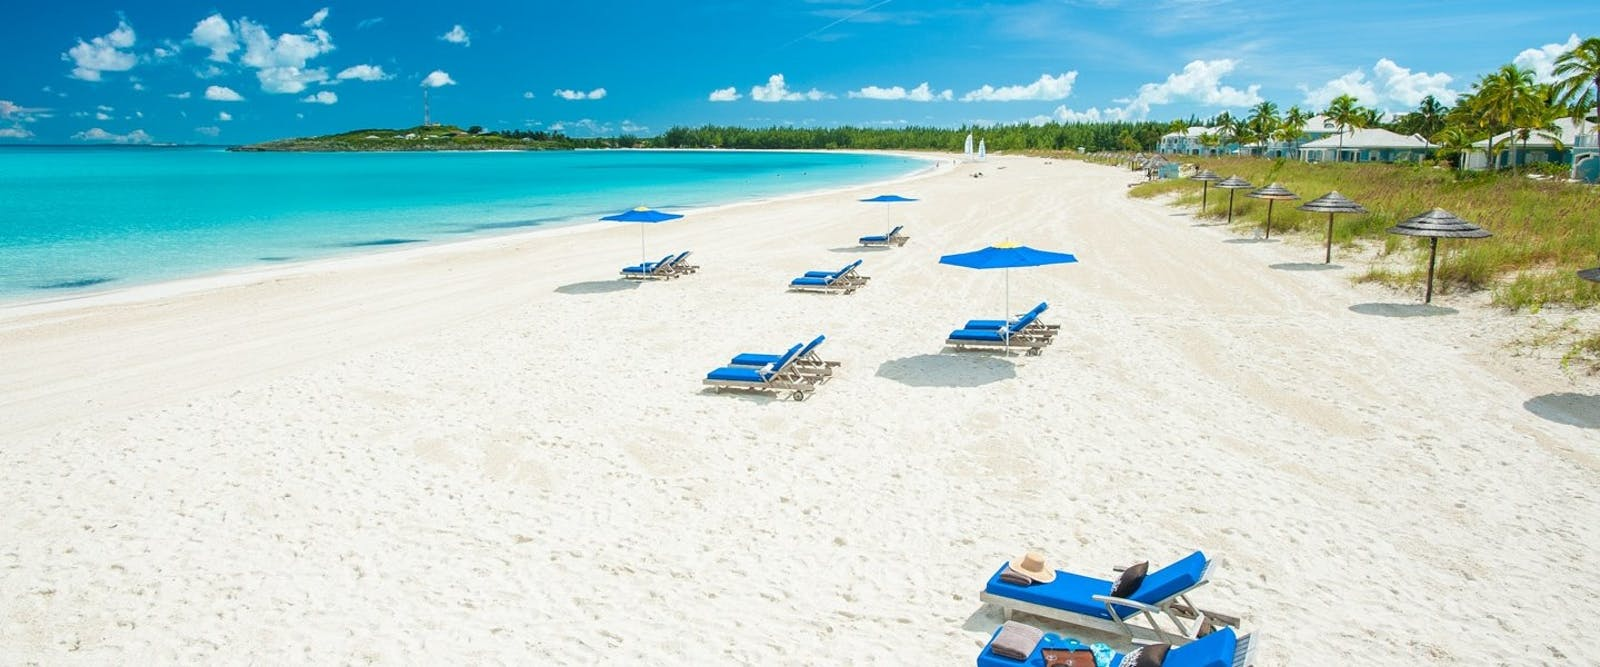 Beach at Sandals Emerald Bay Golf, Tennis & Spa Resort, Bahamas, Caribbean